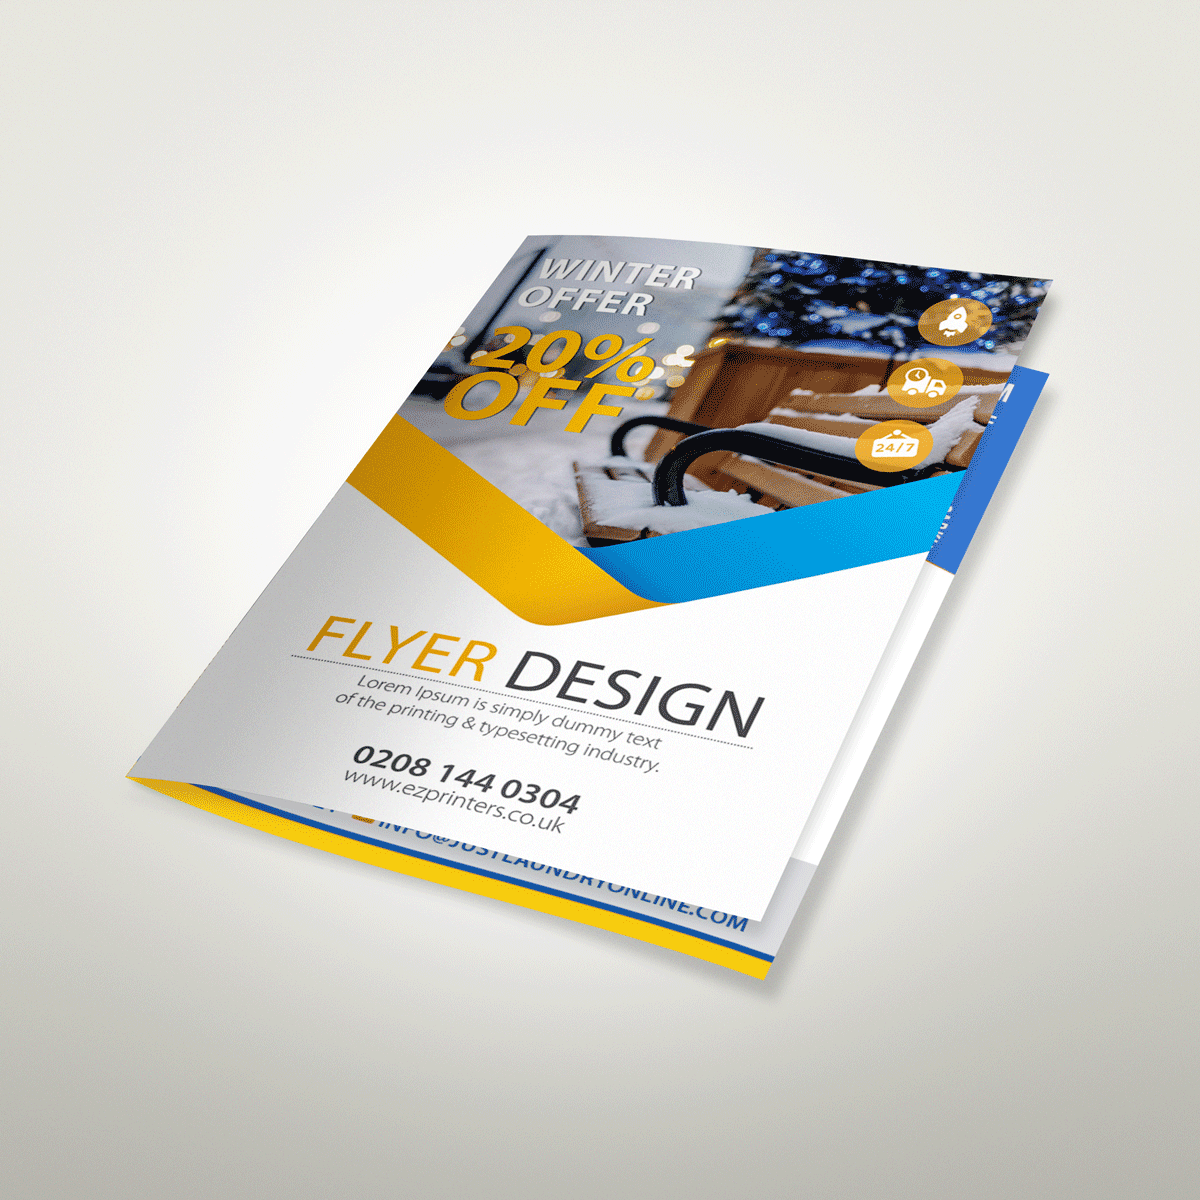 cheap instant last minute quality single and double sided 170gsm matt flyers leaflets printing shop in east london shoreditch near me